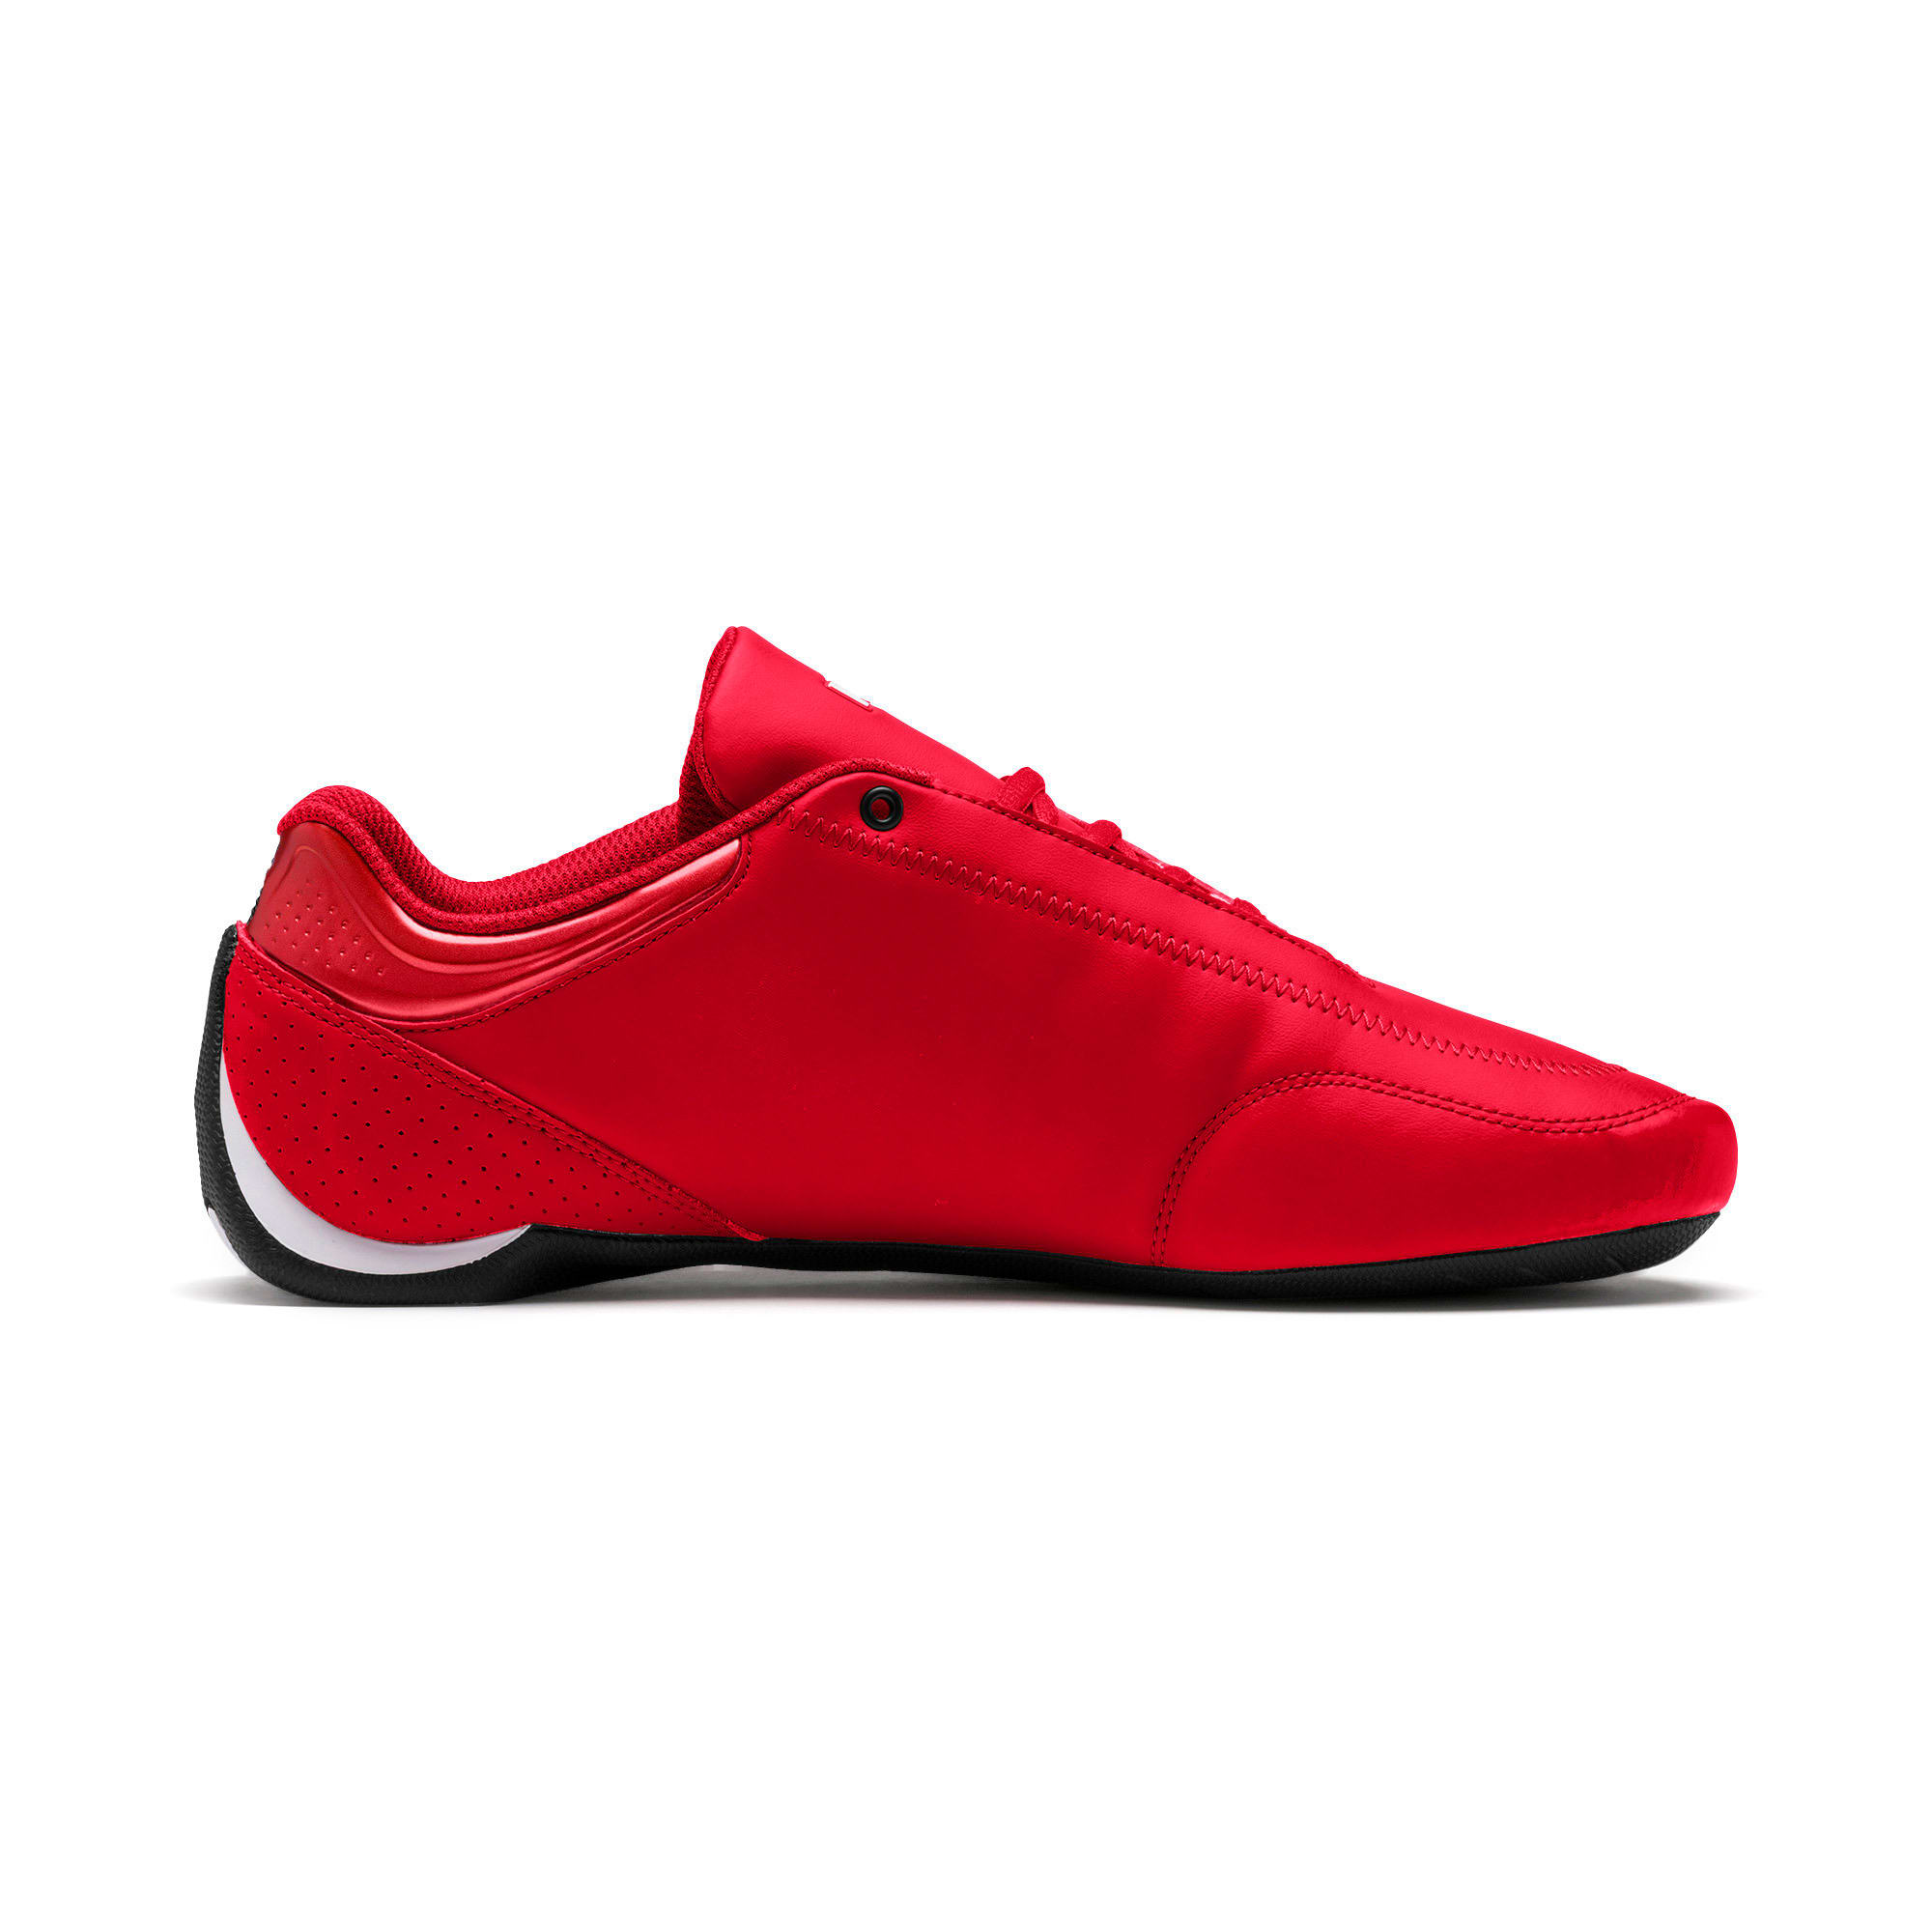 Thumbnail 6 of Ferrari Future Kart Cat Trainers, Rosso Corsa-Puma Black, medium